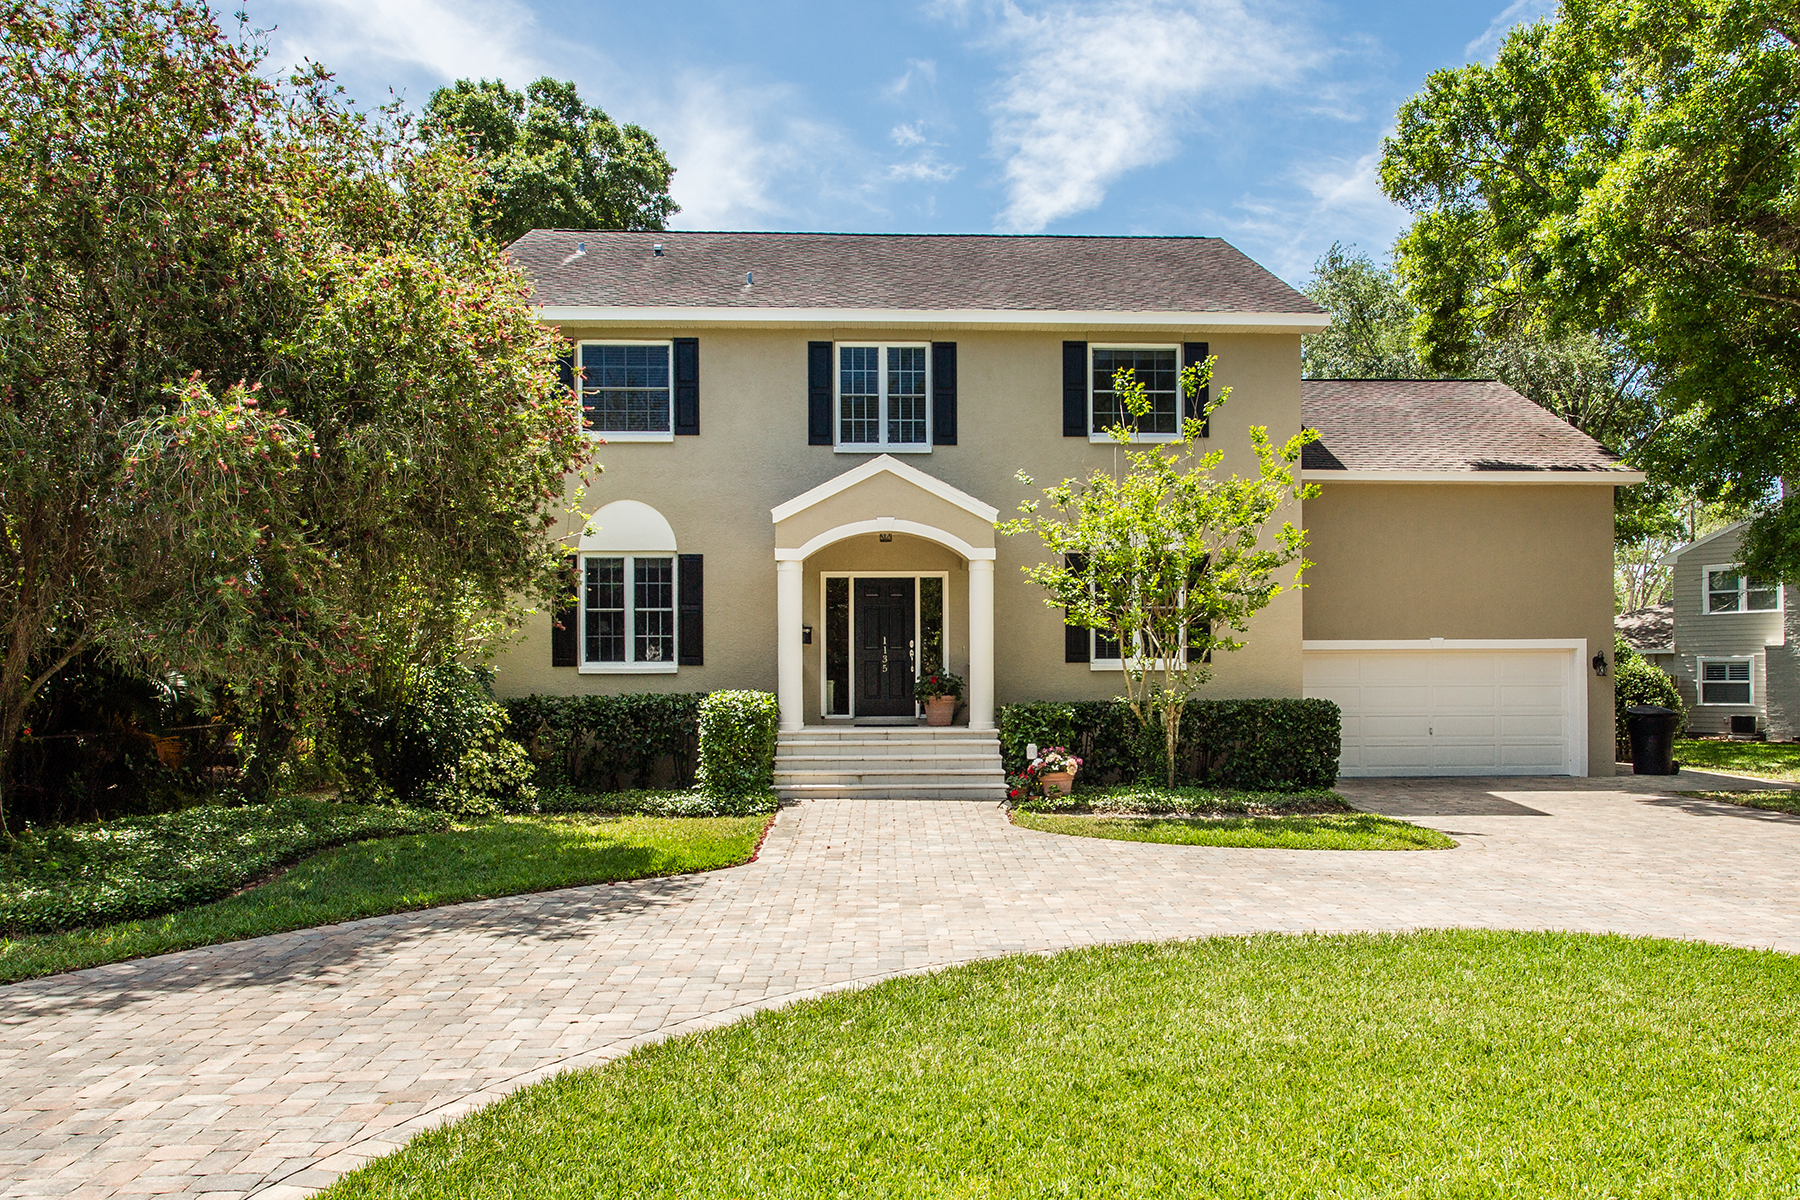 Single Family Home for Sale at SNELL ISLE 1135 Monterey Blvd NE St. Petersburg, Florida, 33704 United States